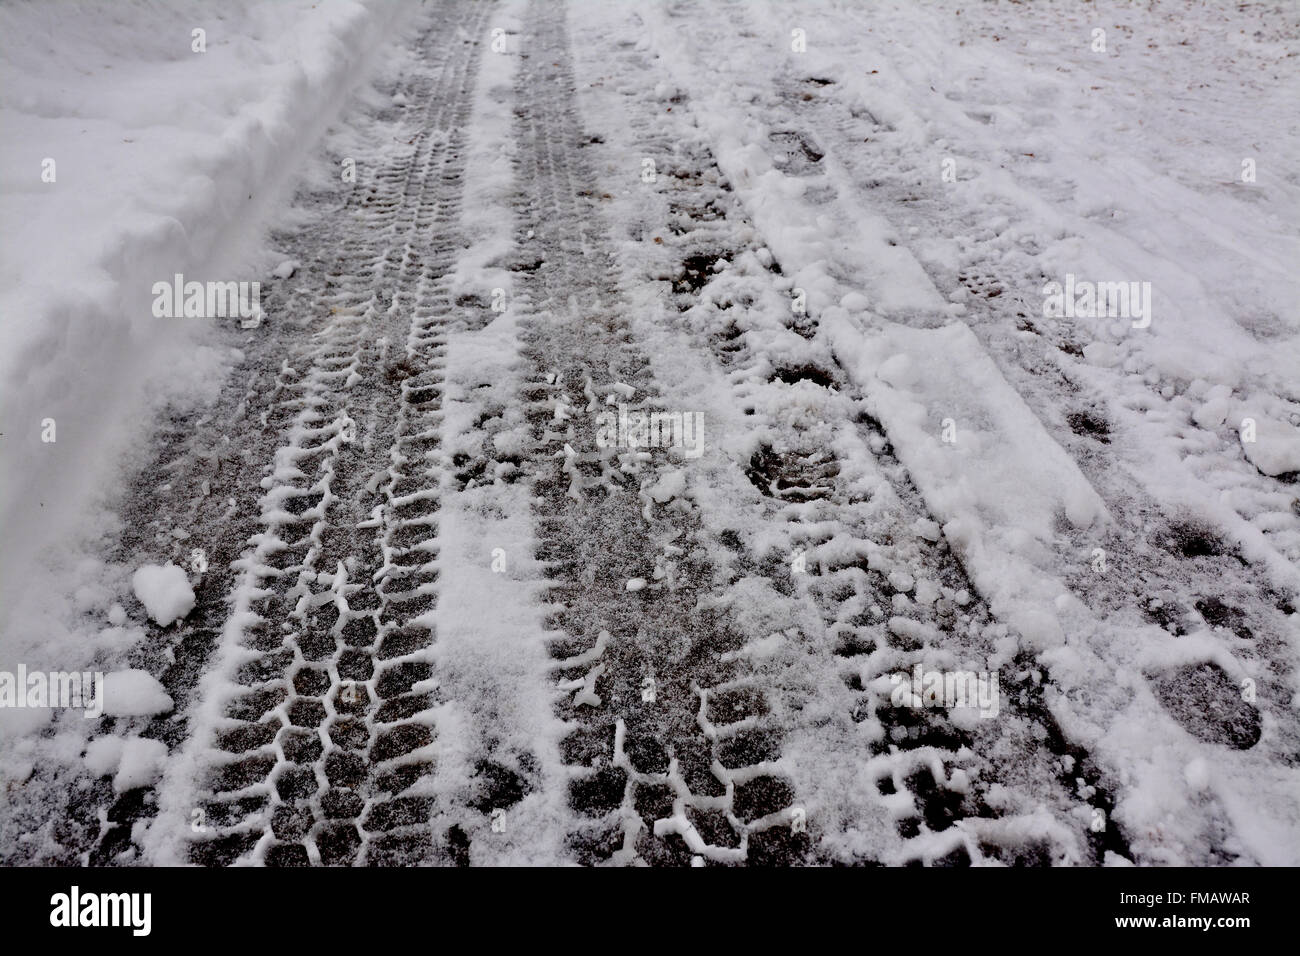 Tire tracks on snow in winter. - Stock Image